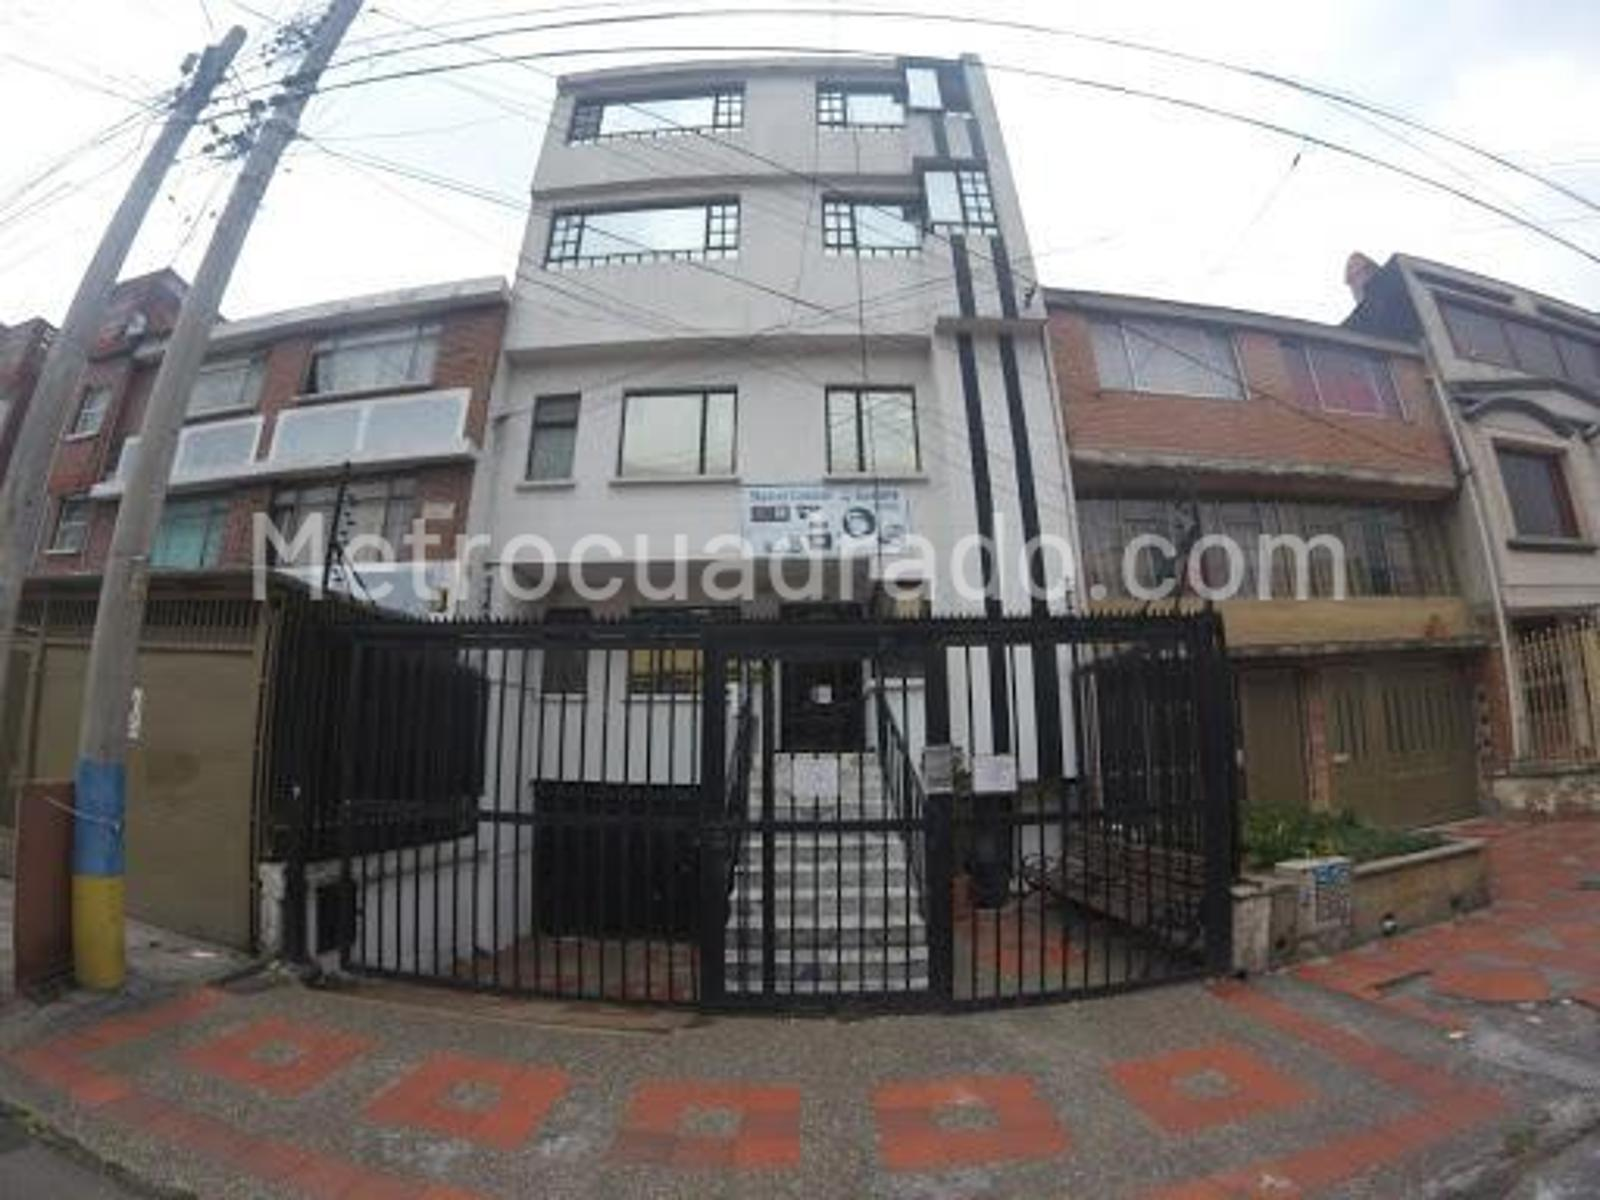 Edificio de apartamentos en Santa isabel occidental, Bogotá D.C. con